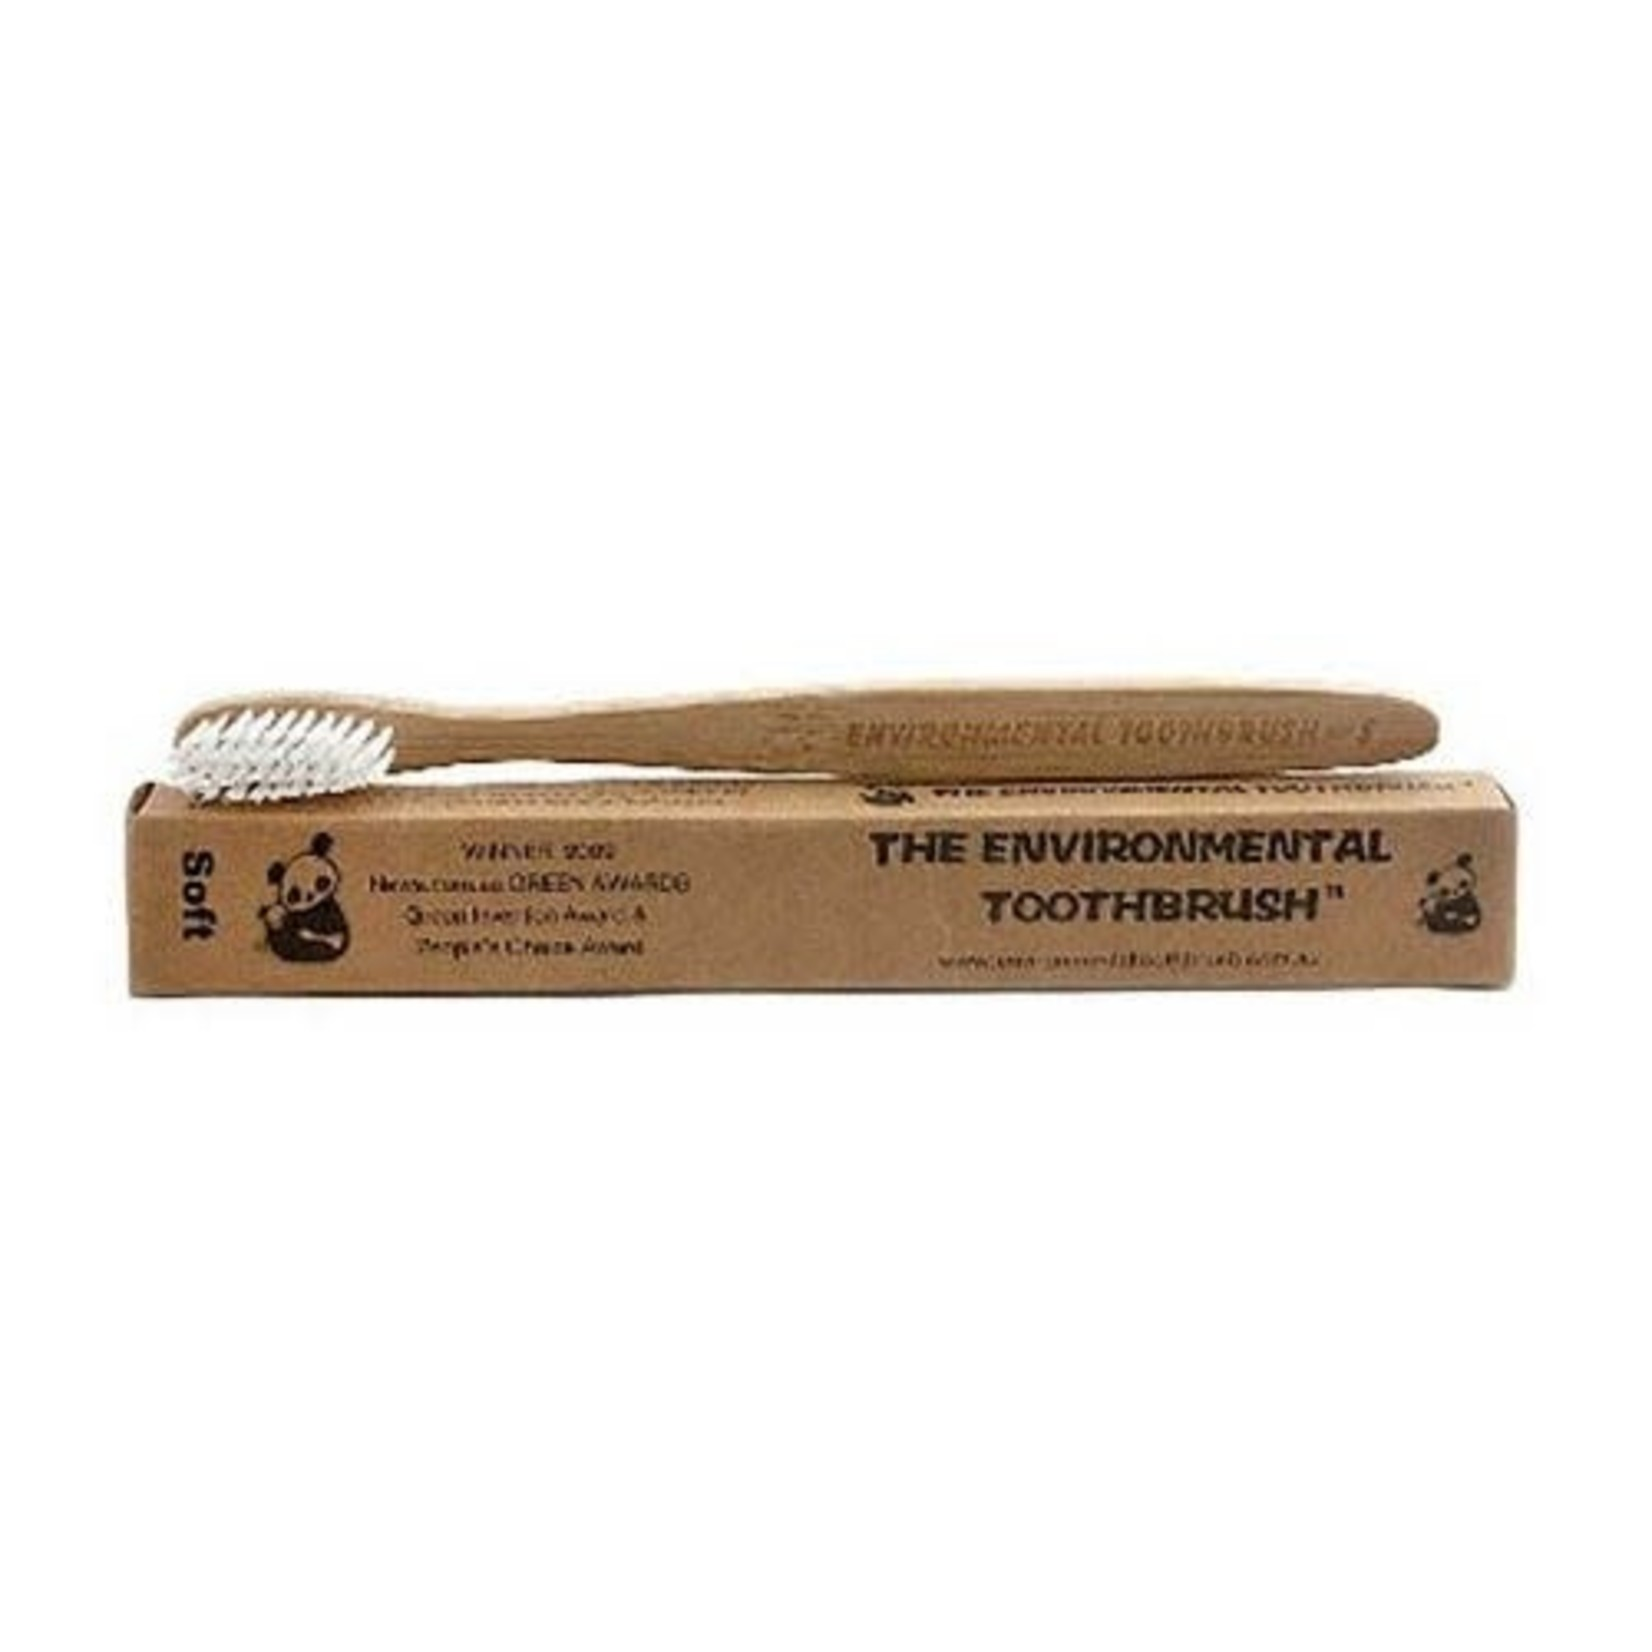 The Original Environmental Toothbrush The Original Environmental Toothbrush